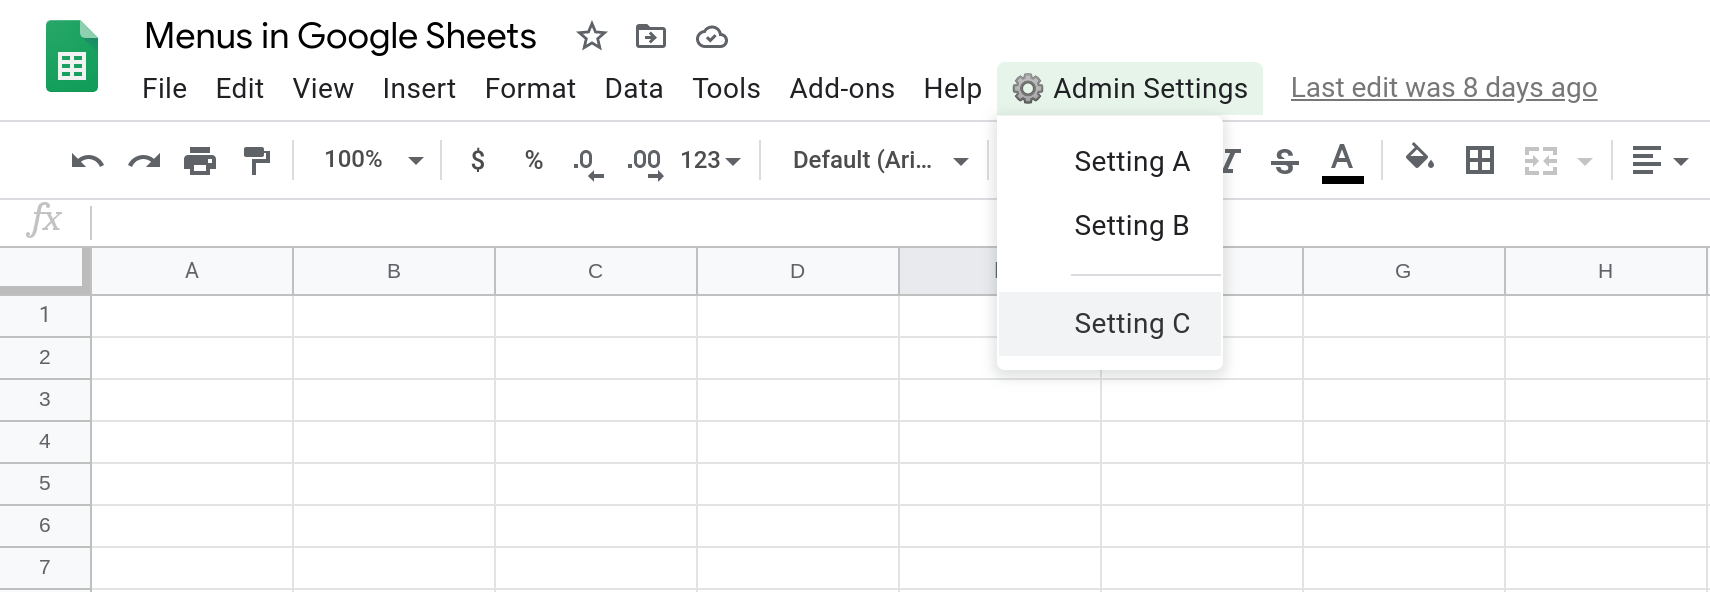 Screenshot of a Google Sheets spreadsheet showing a custom menu with three menu items. A line separator separates the third menu item from the first two.